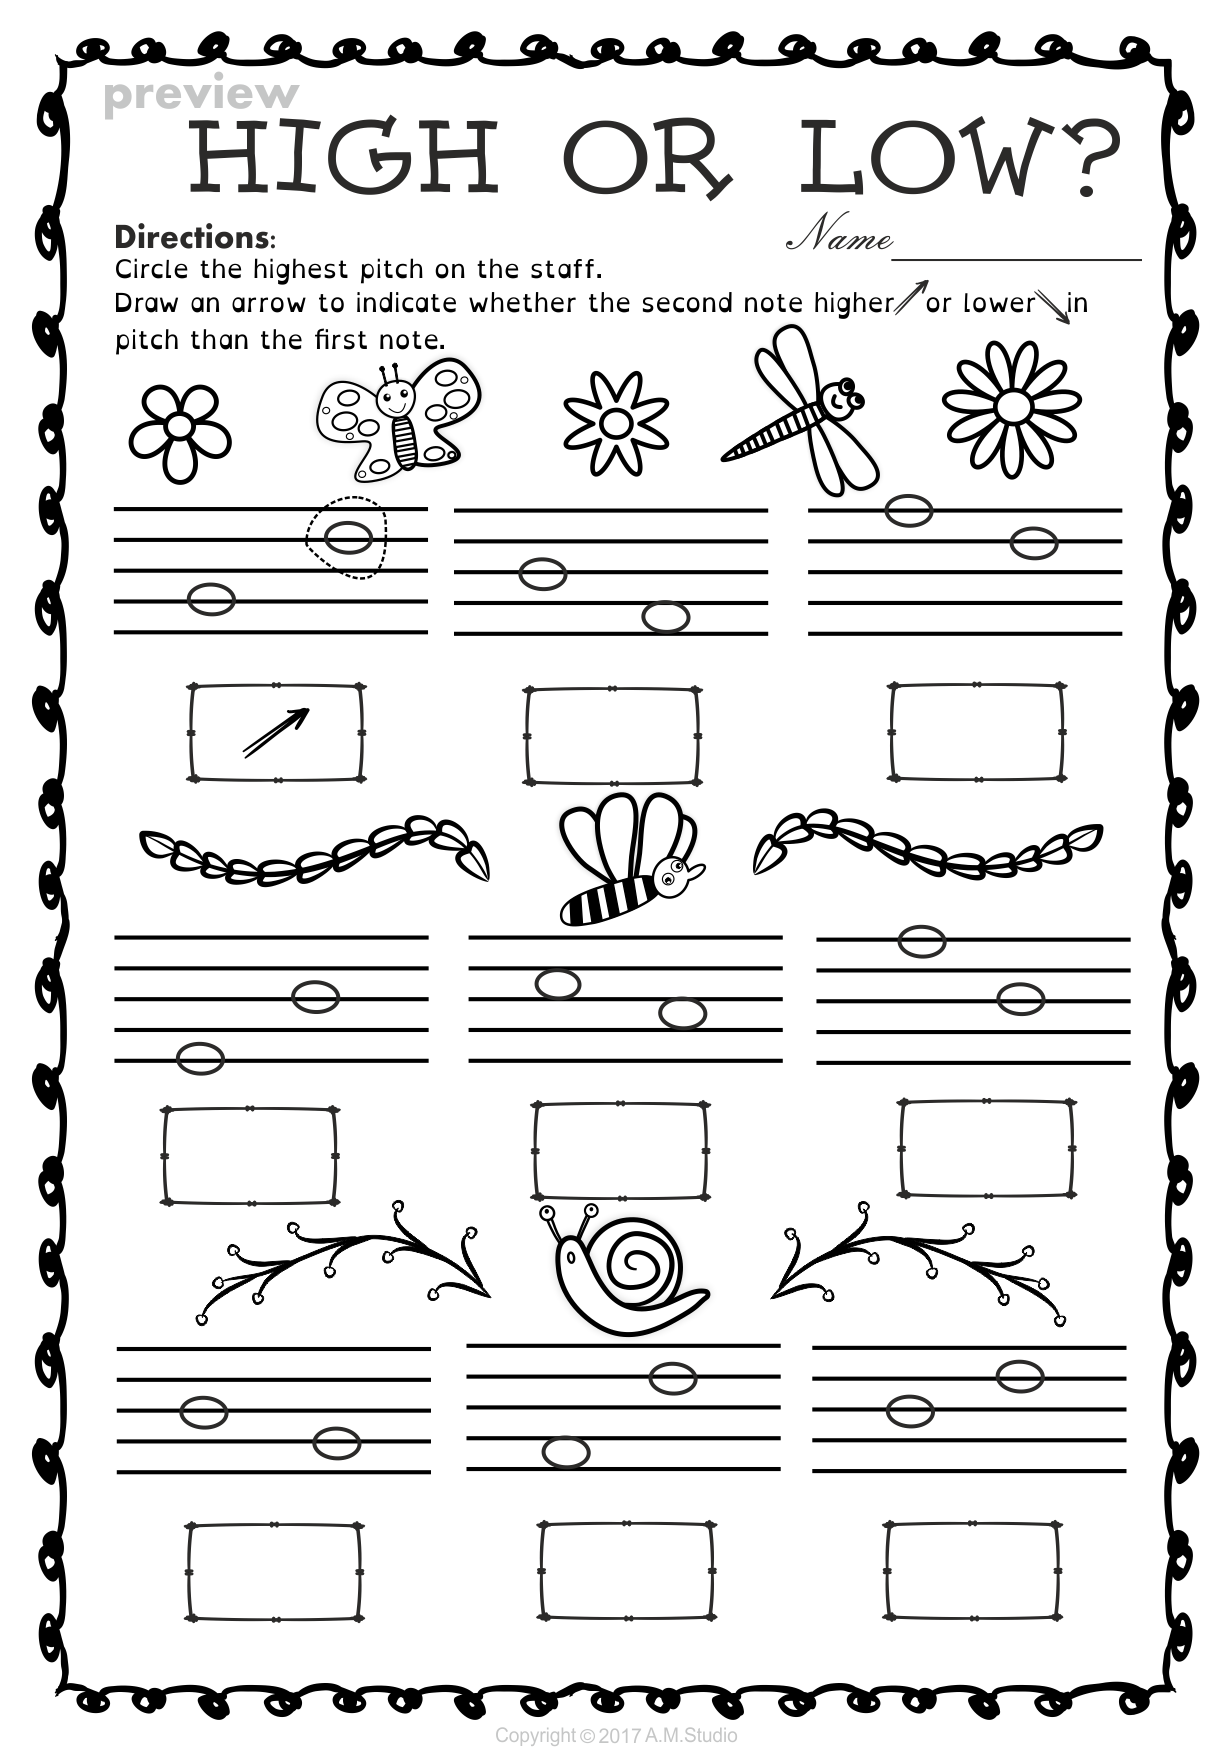 Lines And Spaces Music Worksheets For Spring Print And Digital Music Worksheets Music Lessons For Kids Elementary Music Teacher [ 1750 x 1228 Pixel ]